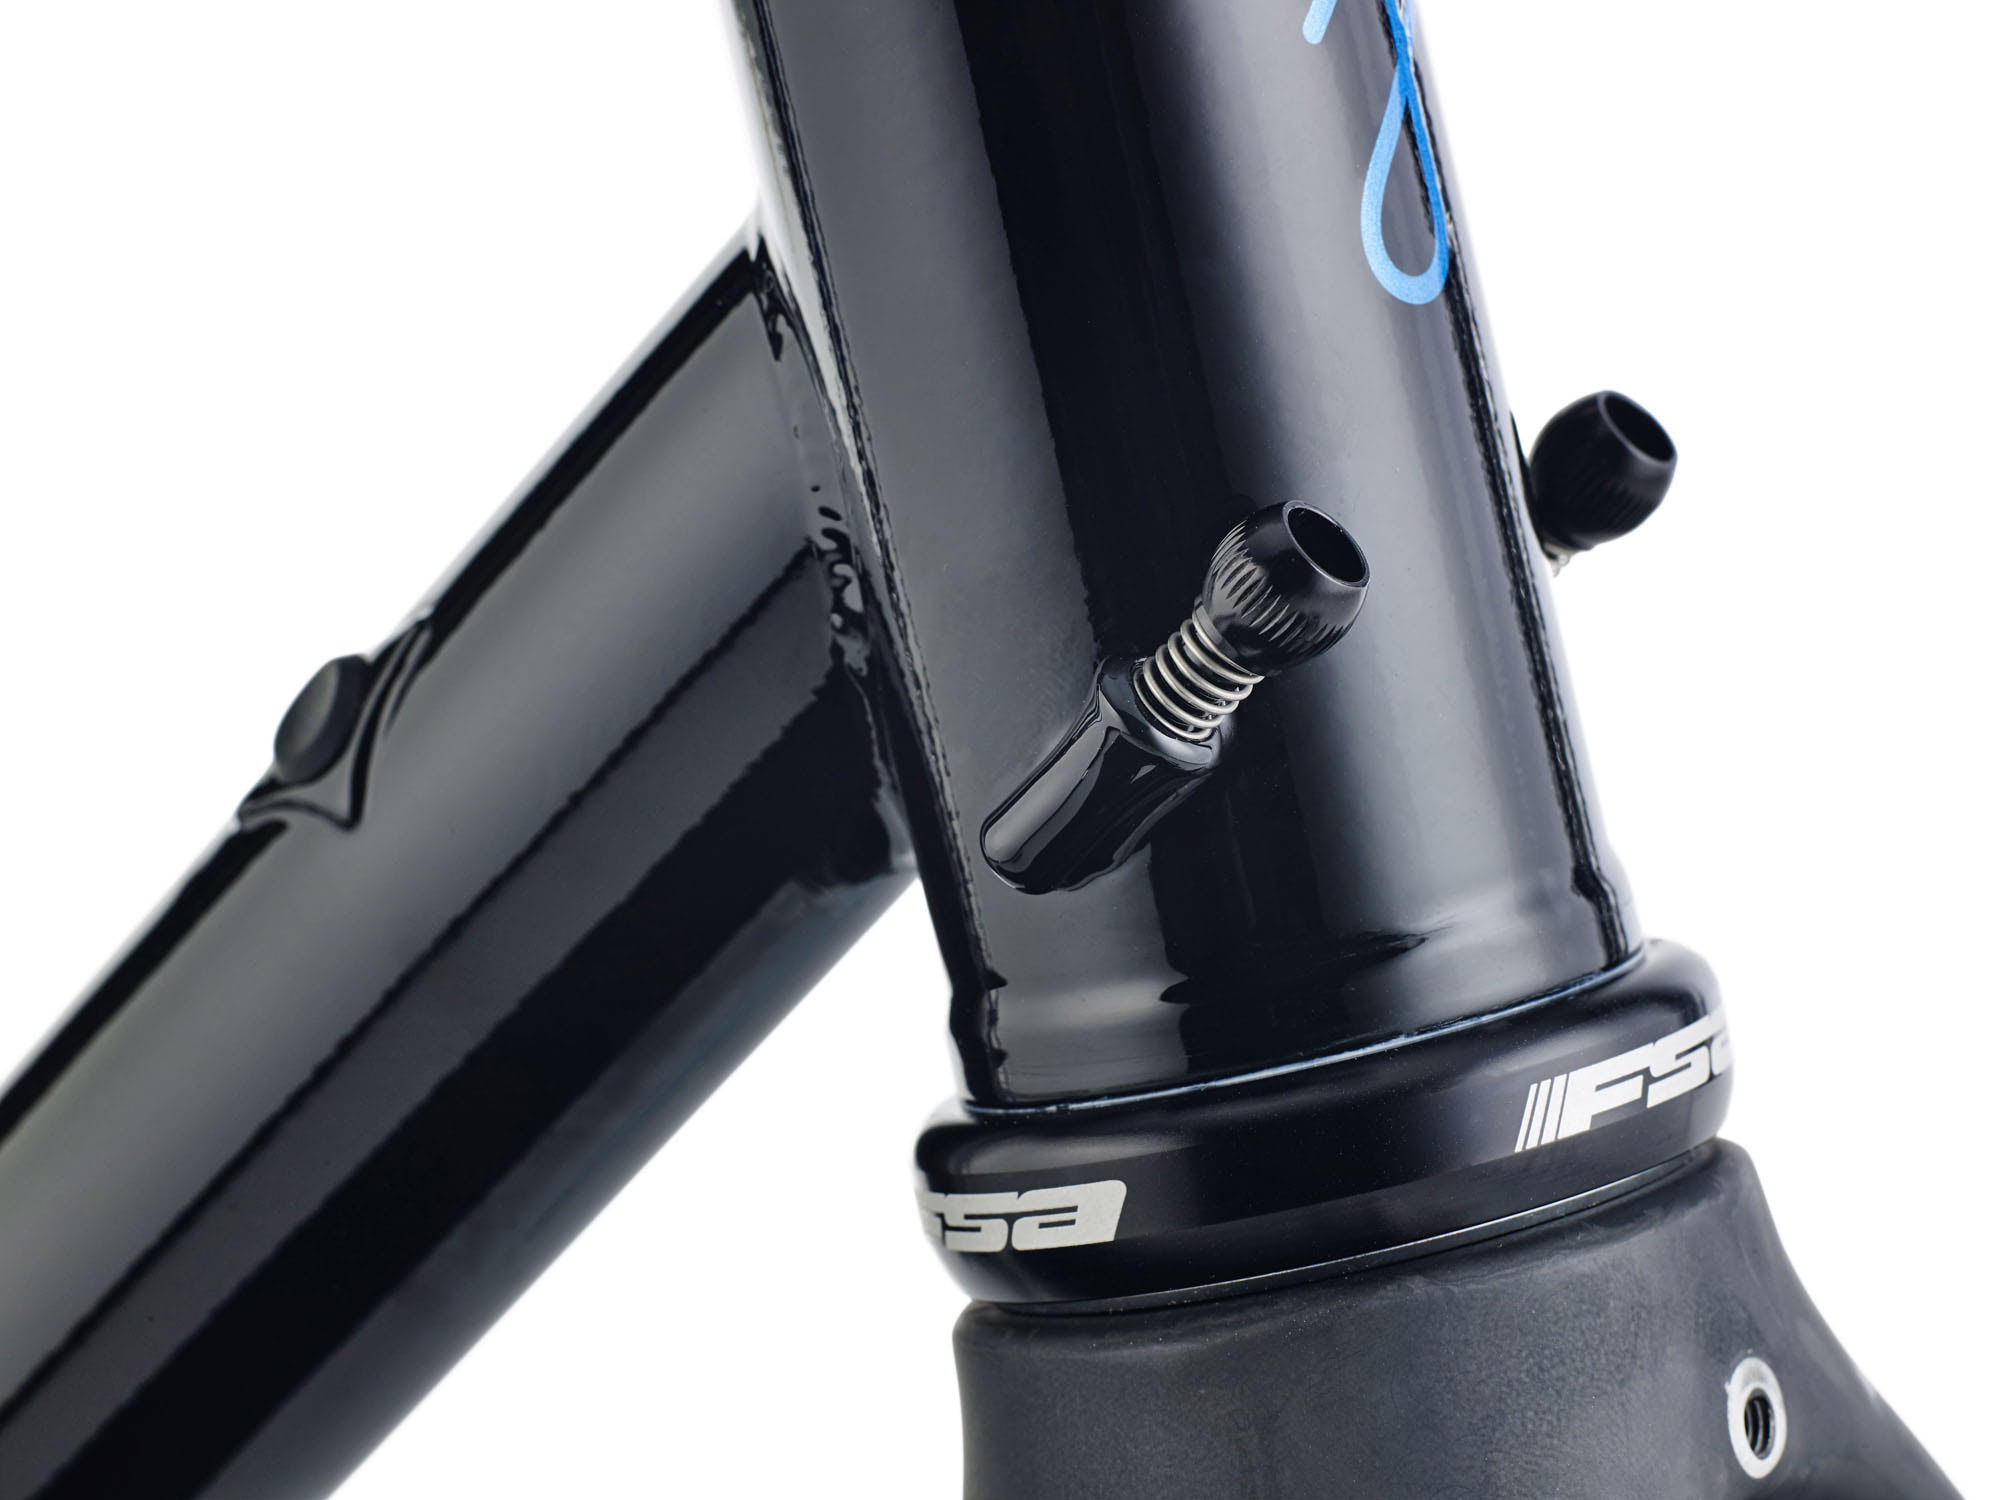 EXTERNAL CABLE ROUTING & DI2 COMPATABLE